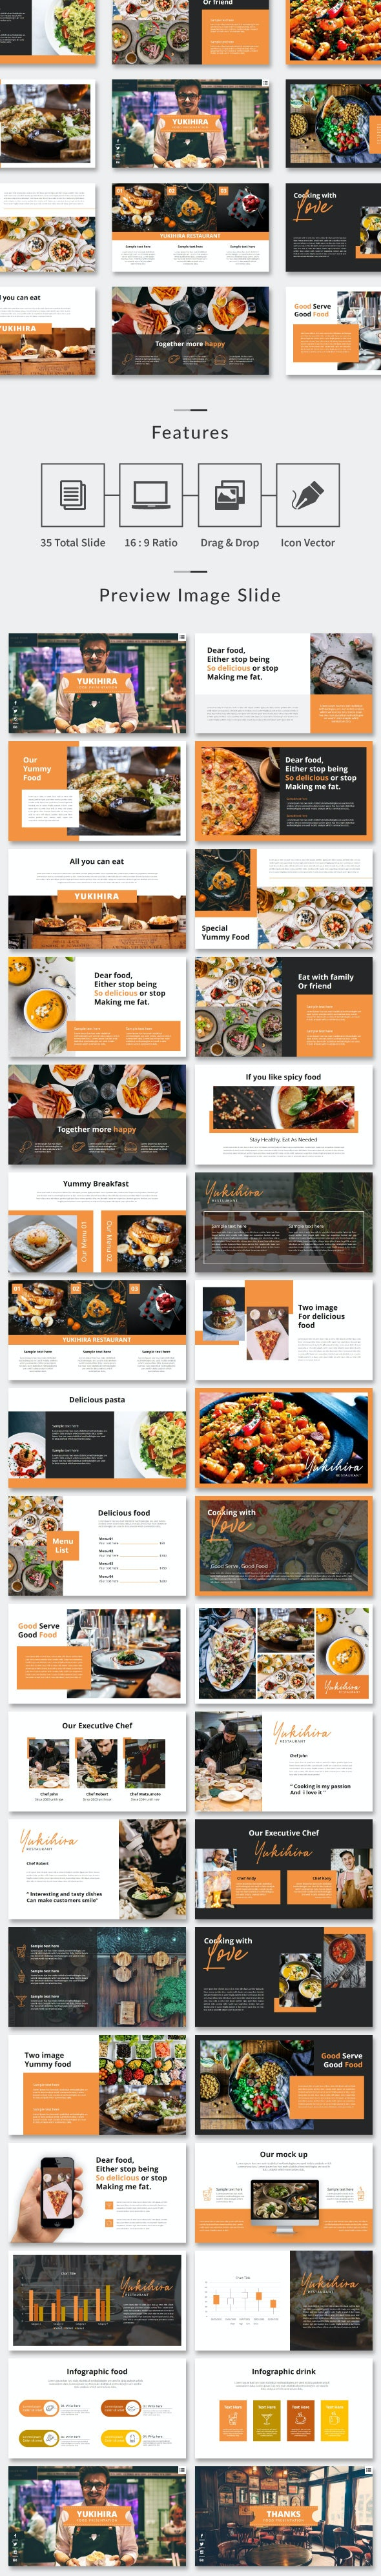 Food Presentation - PowerPoint - Business PowerPoint Templates